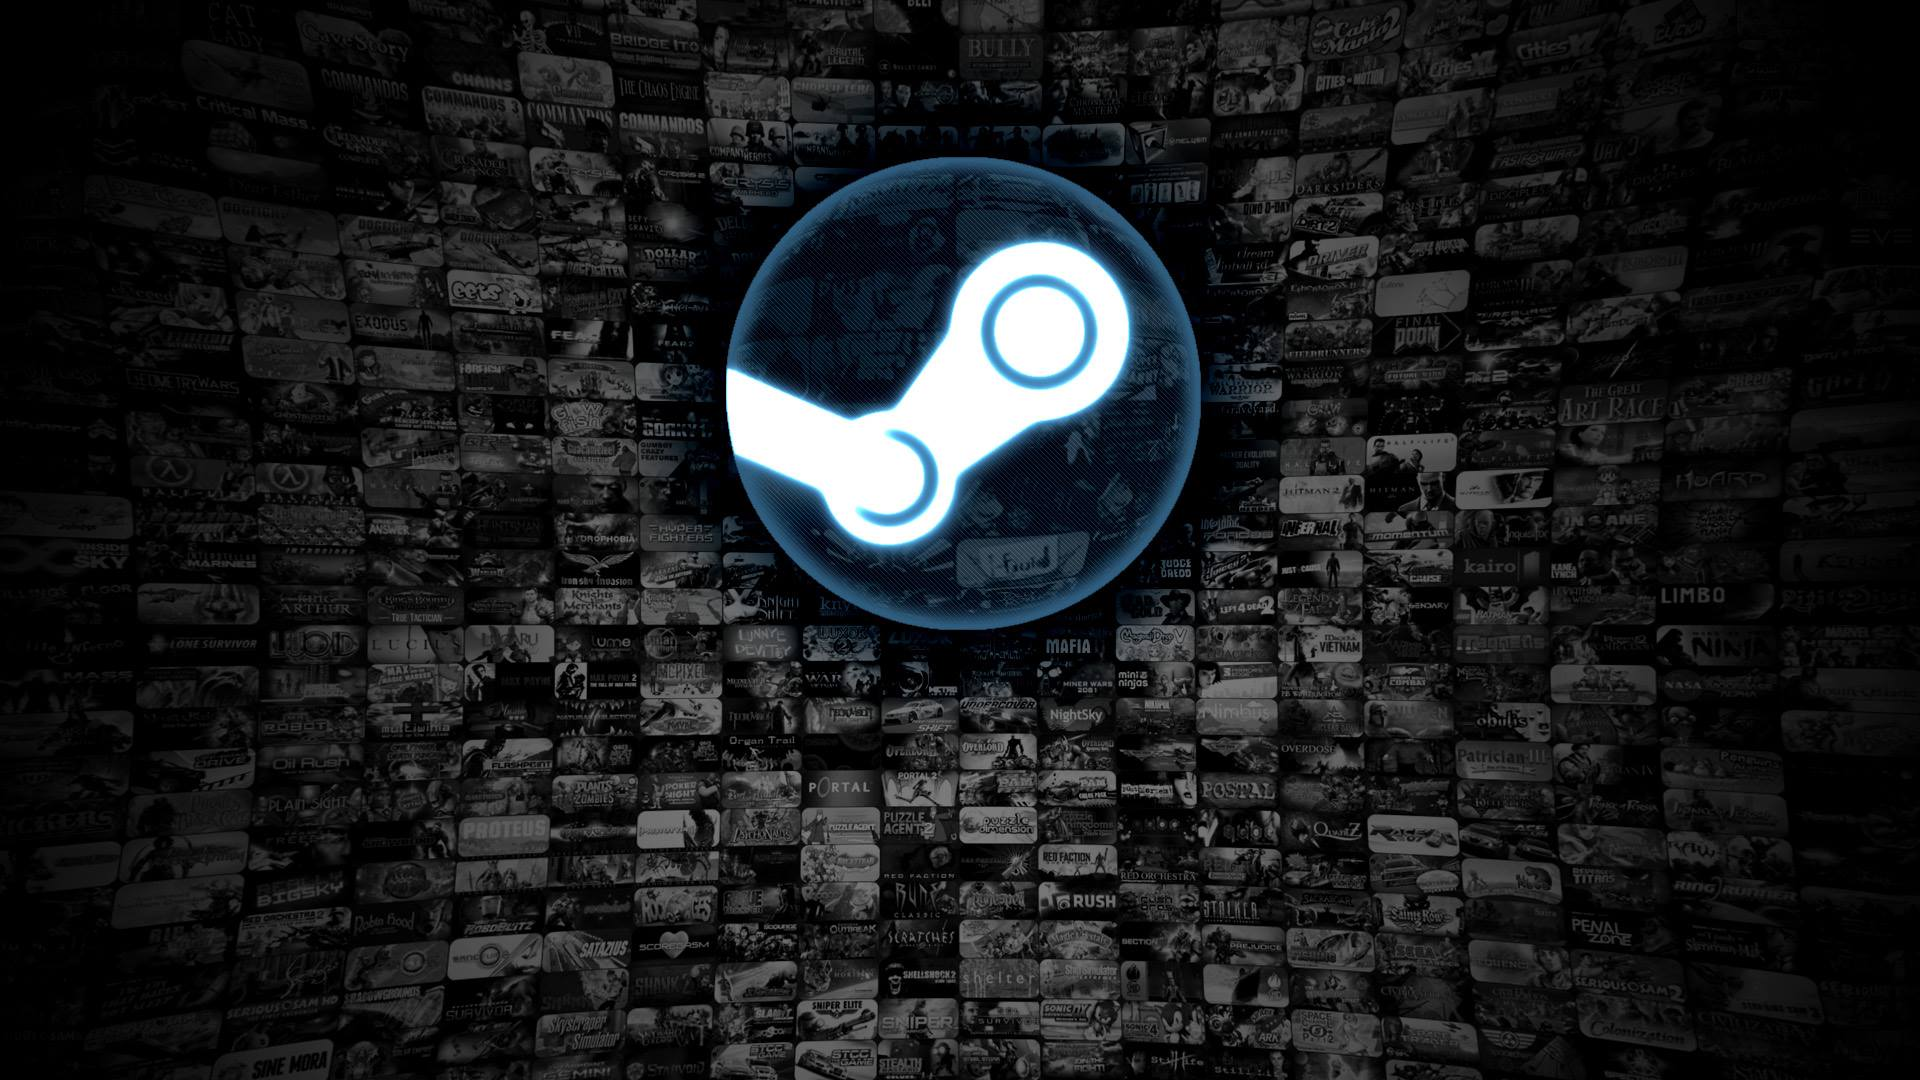 Steam Group Helps Players Prevent Carpal Tunnel